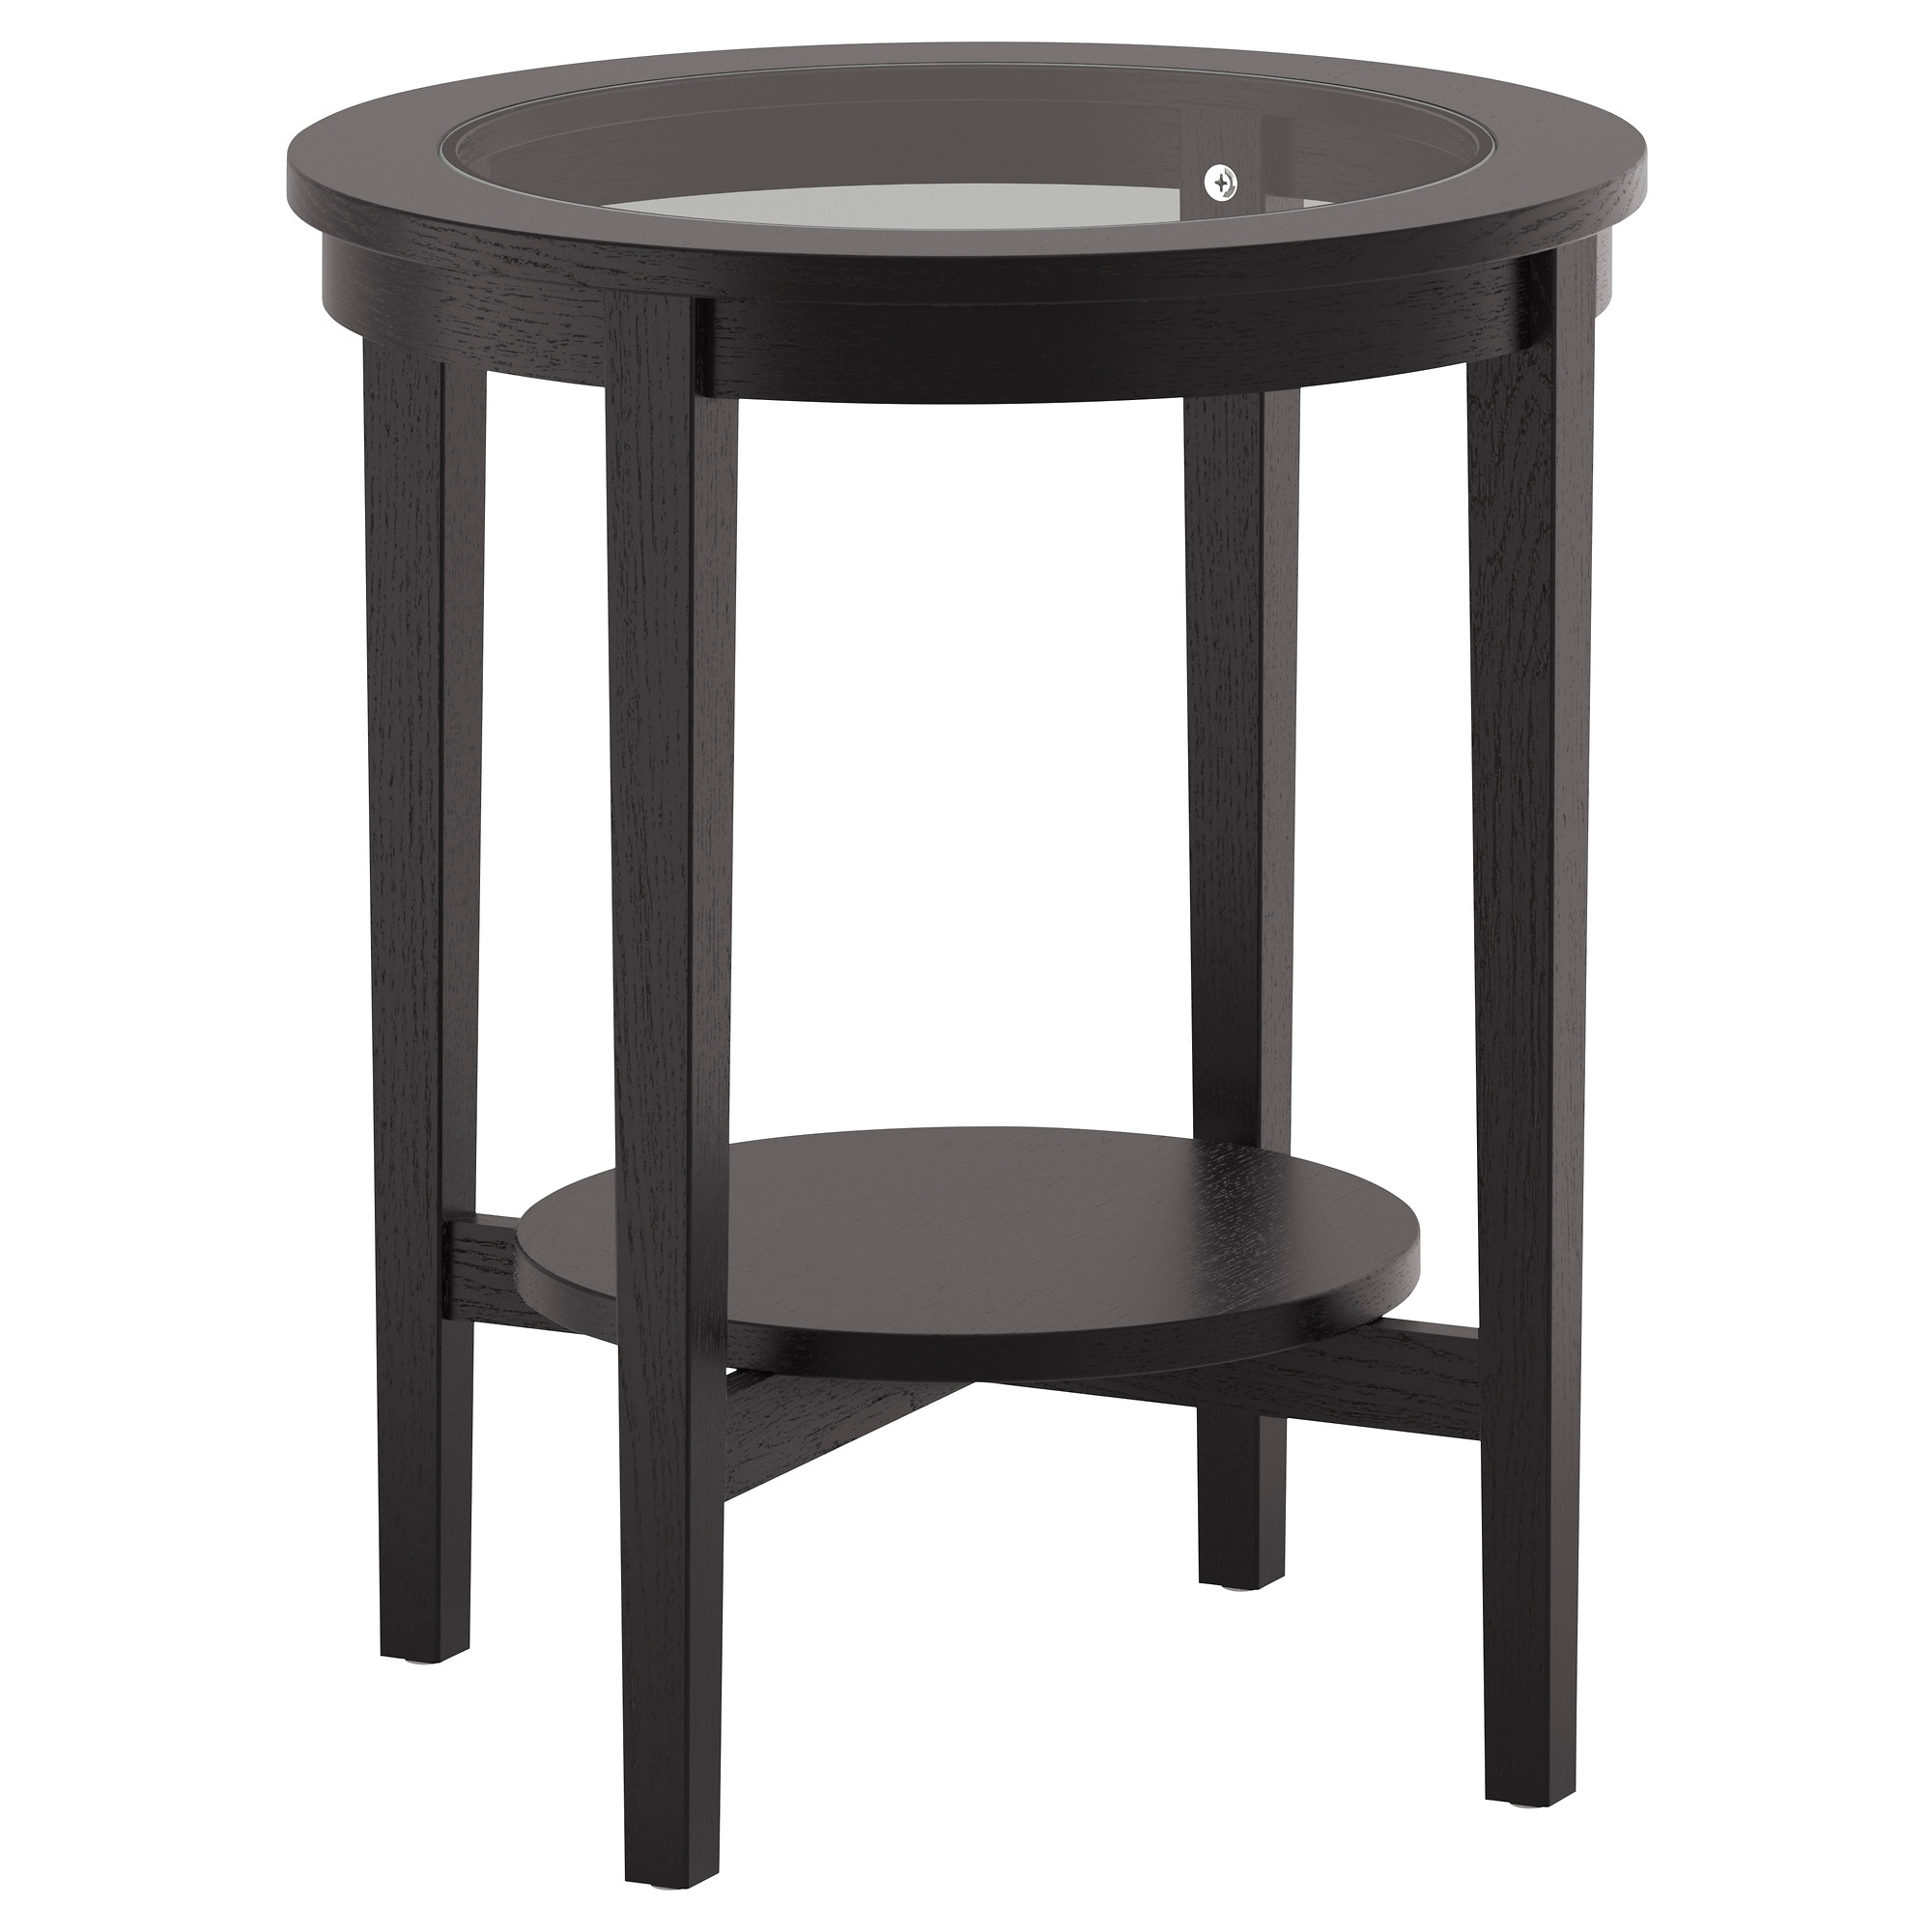 Ikea leksvik coffee table - Malmsta Side Table Black Brown Height 24 3 4 Diameter